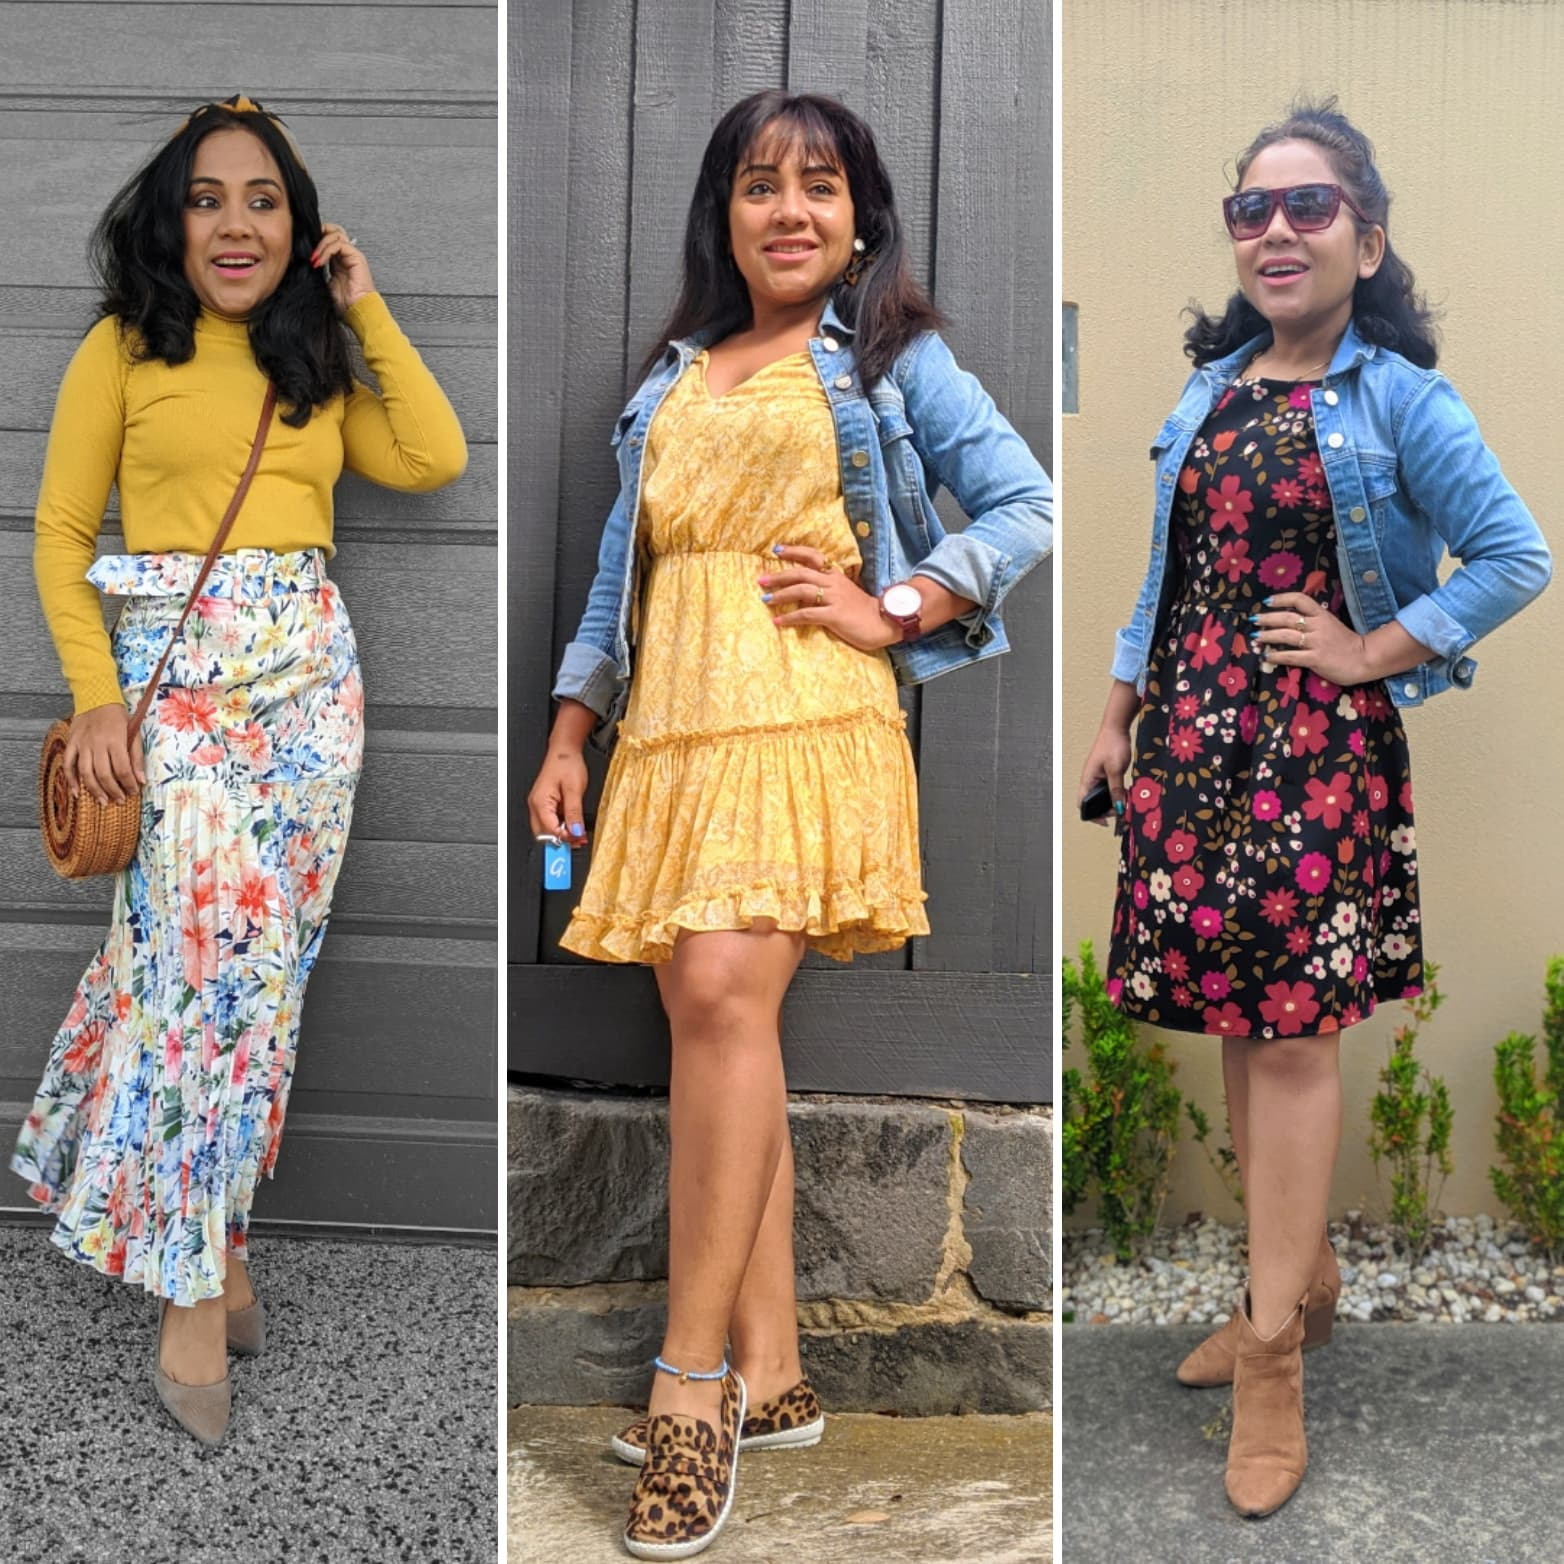 @travelinstylewithdebs's cover photo for 'Top 8 Spring fashion trends to look out in 2020 - Travel & Style with Debs!'